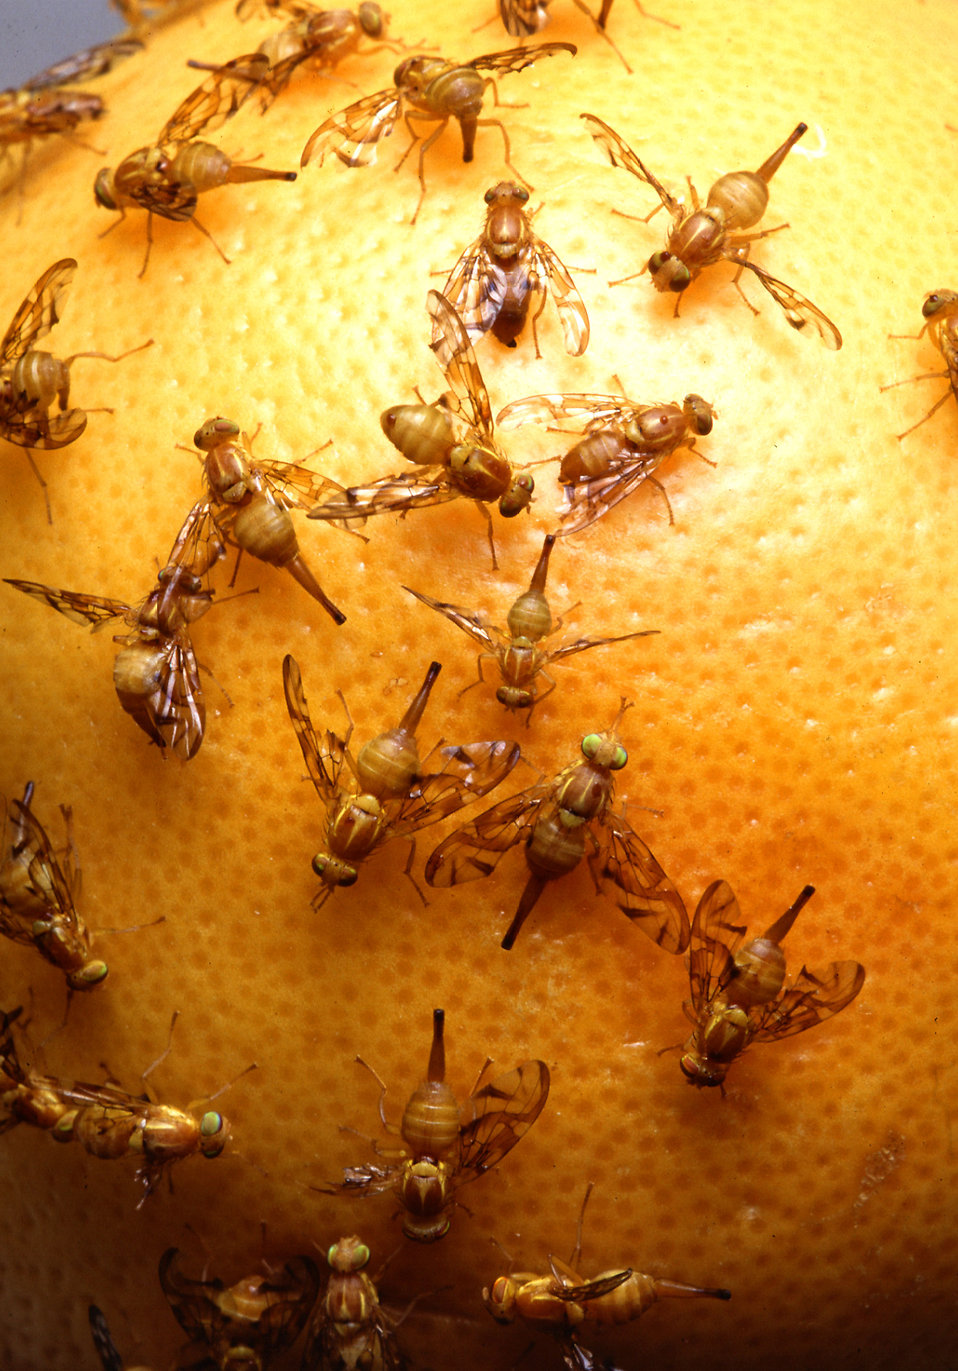 Mexican fruit flies laying eggs in a grapefruit : Free Stock Photo